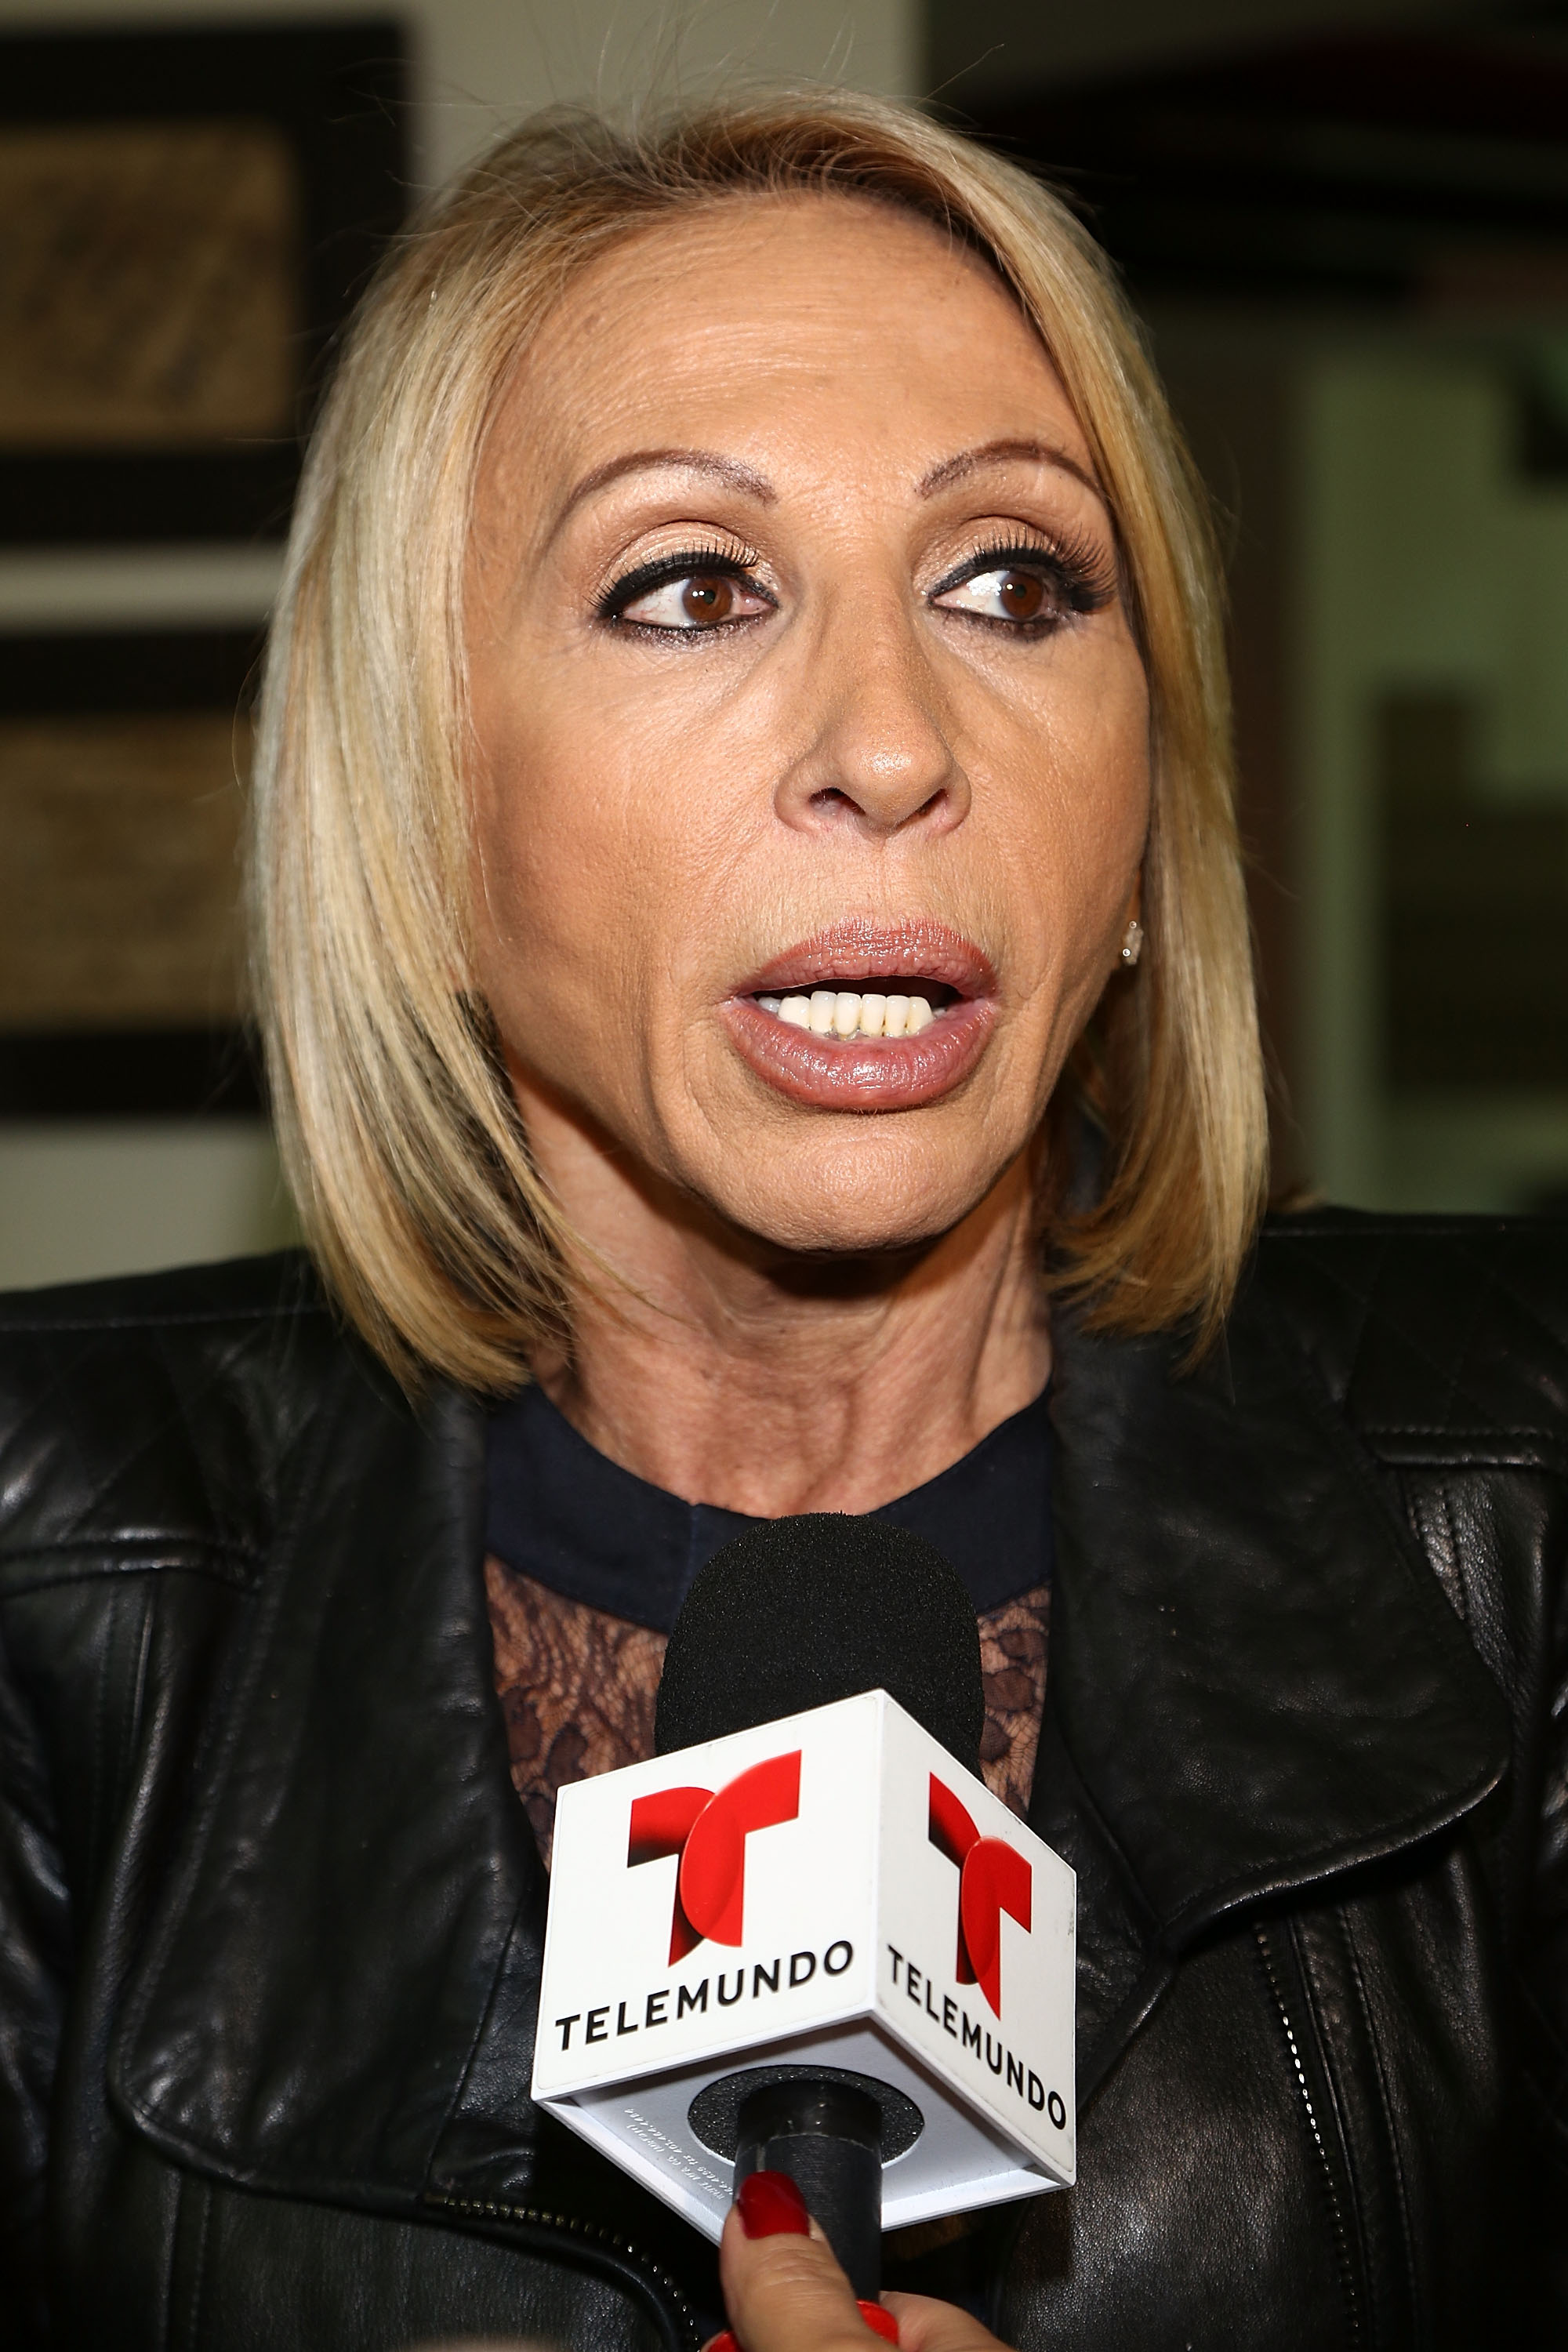 Laura Bozzo Connection To A Criminal Network In Peru Exposed Cries After Carmen Aristegui